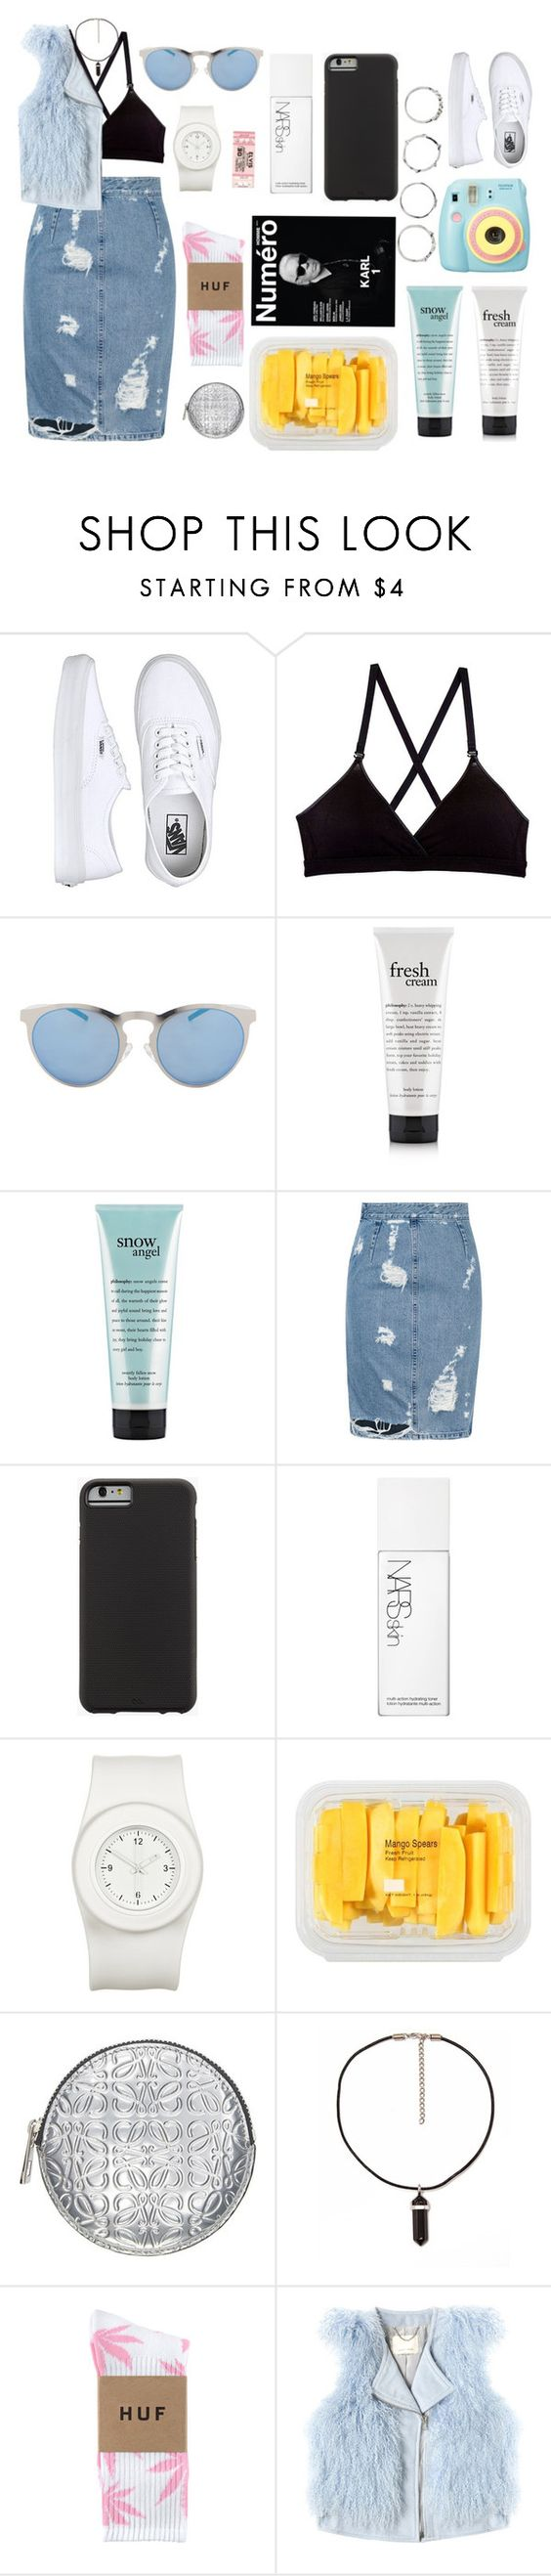 """Sin título #41"" by blenm ❤ liked on Polyvore featuring Vans, Cosabella, Illesteva, philosophy, Acne Studios, Case-Mate, NARS Cosmetics, The Unbranded Brand, MANGO and Loewe"